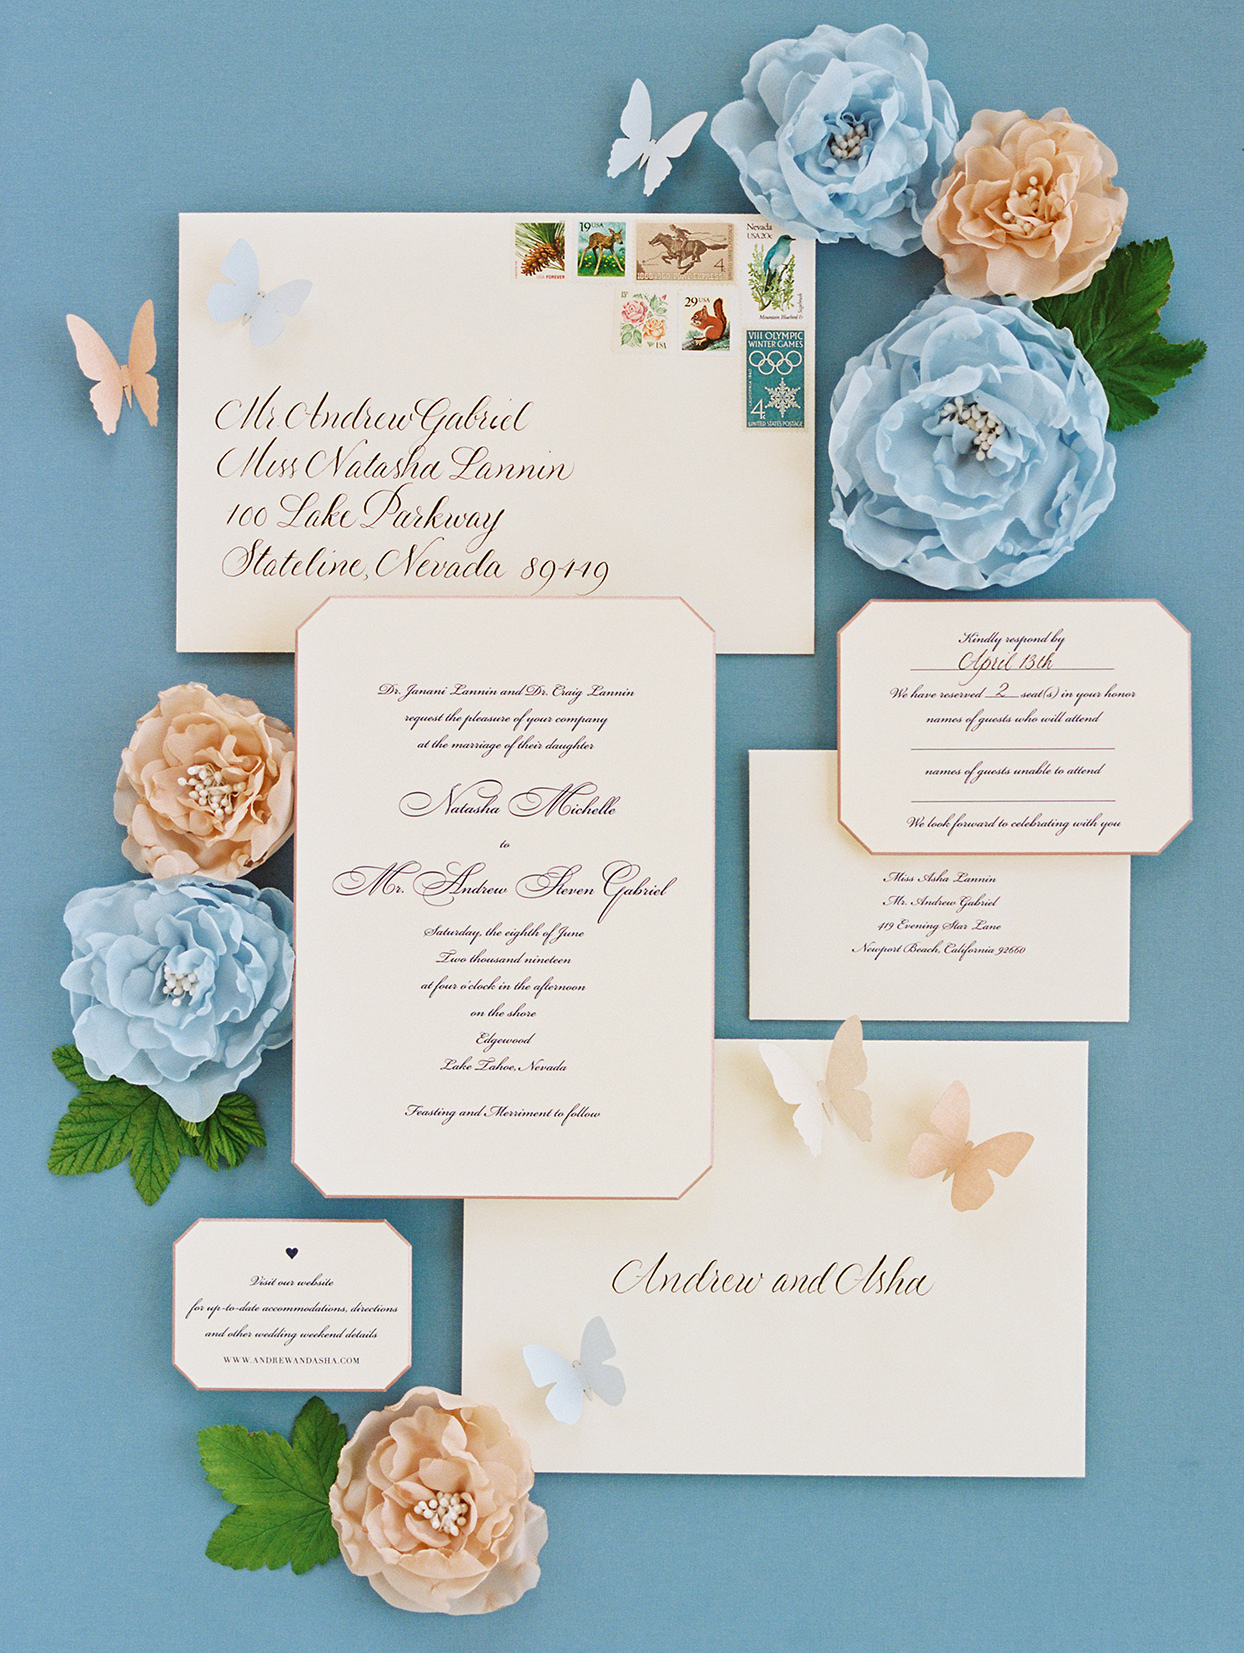 asha andrew wedding invites in pink, peach and blue